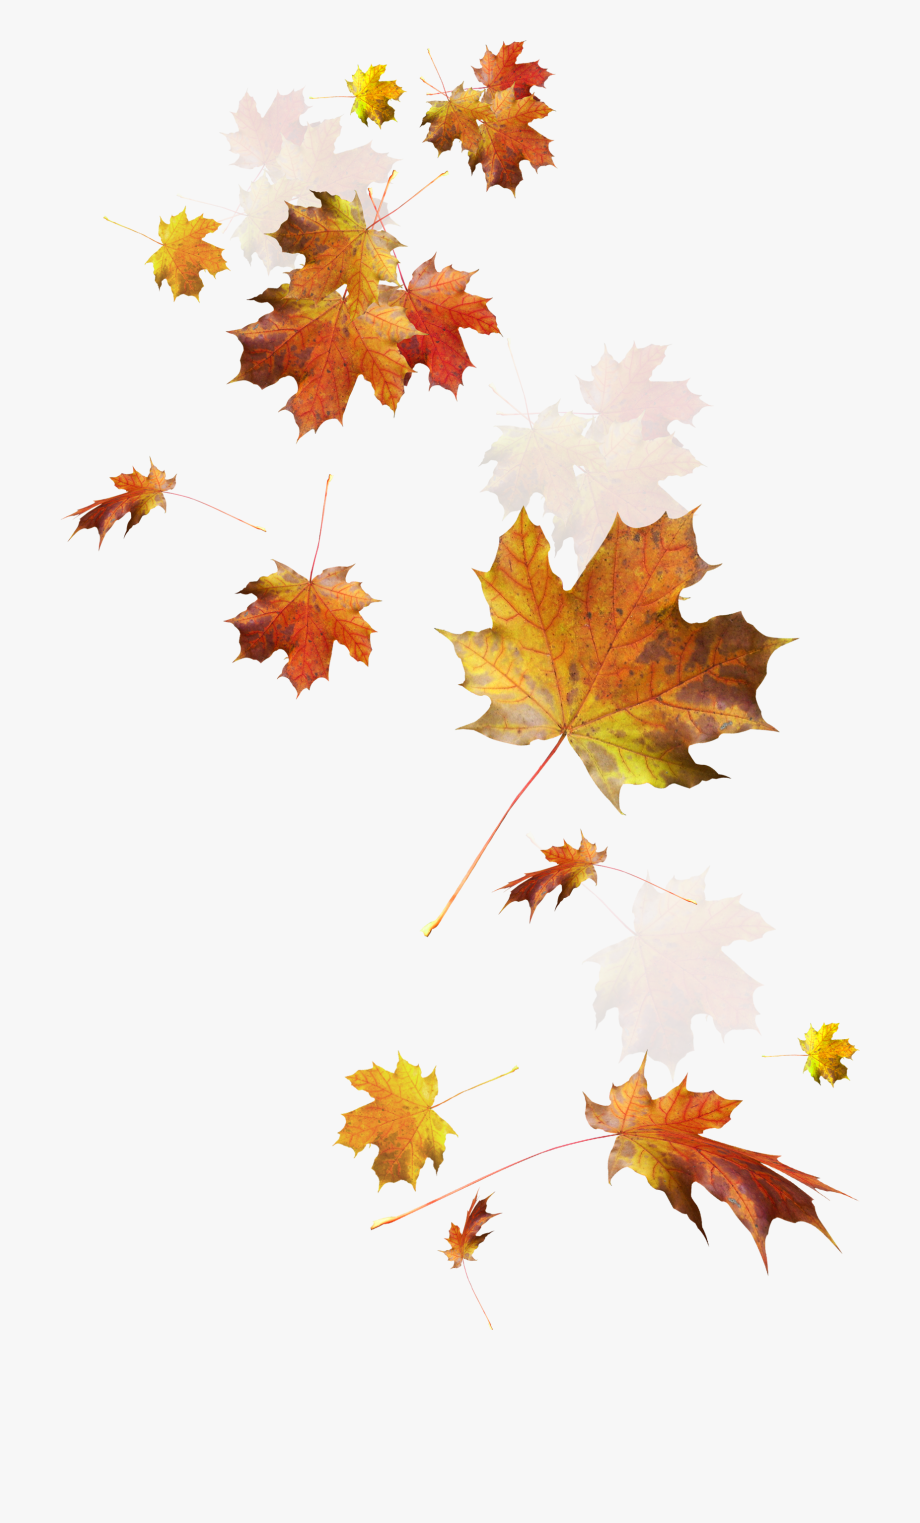 Falling autumn leaves clipart image transparent download Transparent Fall Leaves Falling Png - Autumn Leaves Png Transparent ... image transparent download